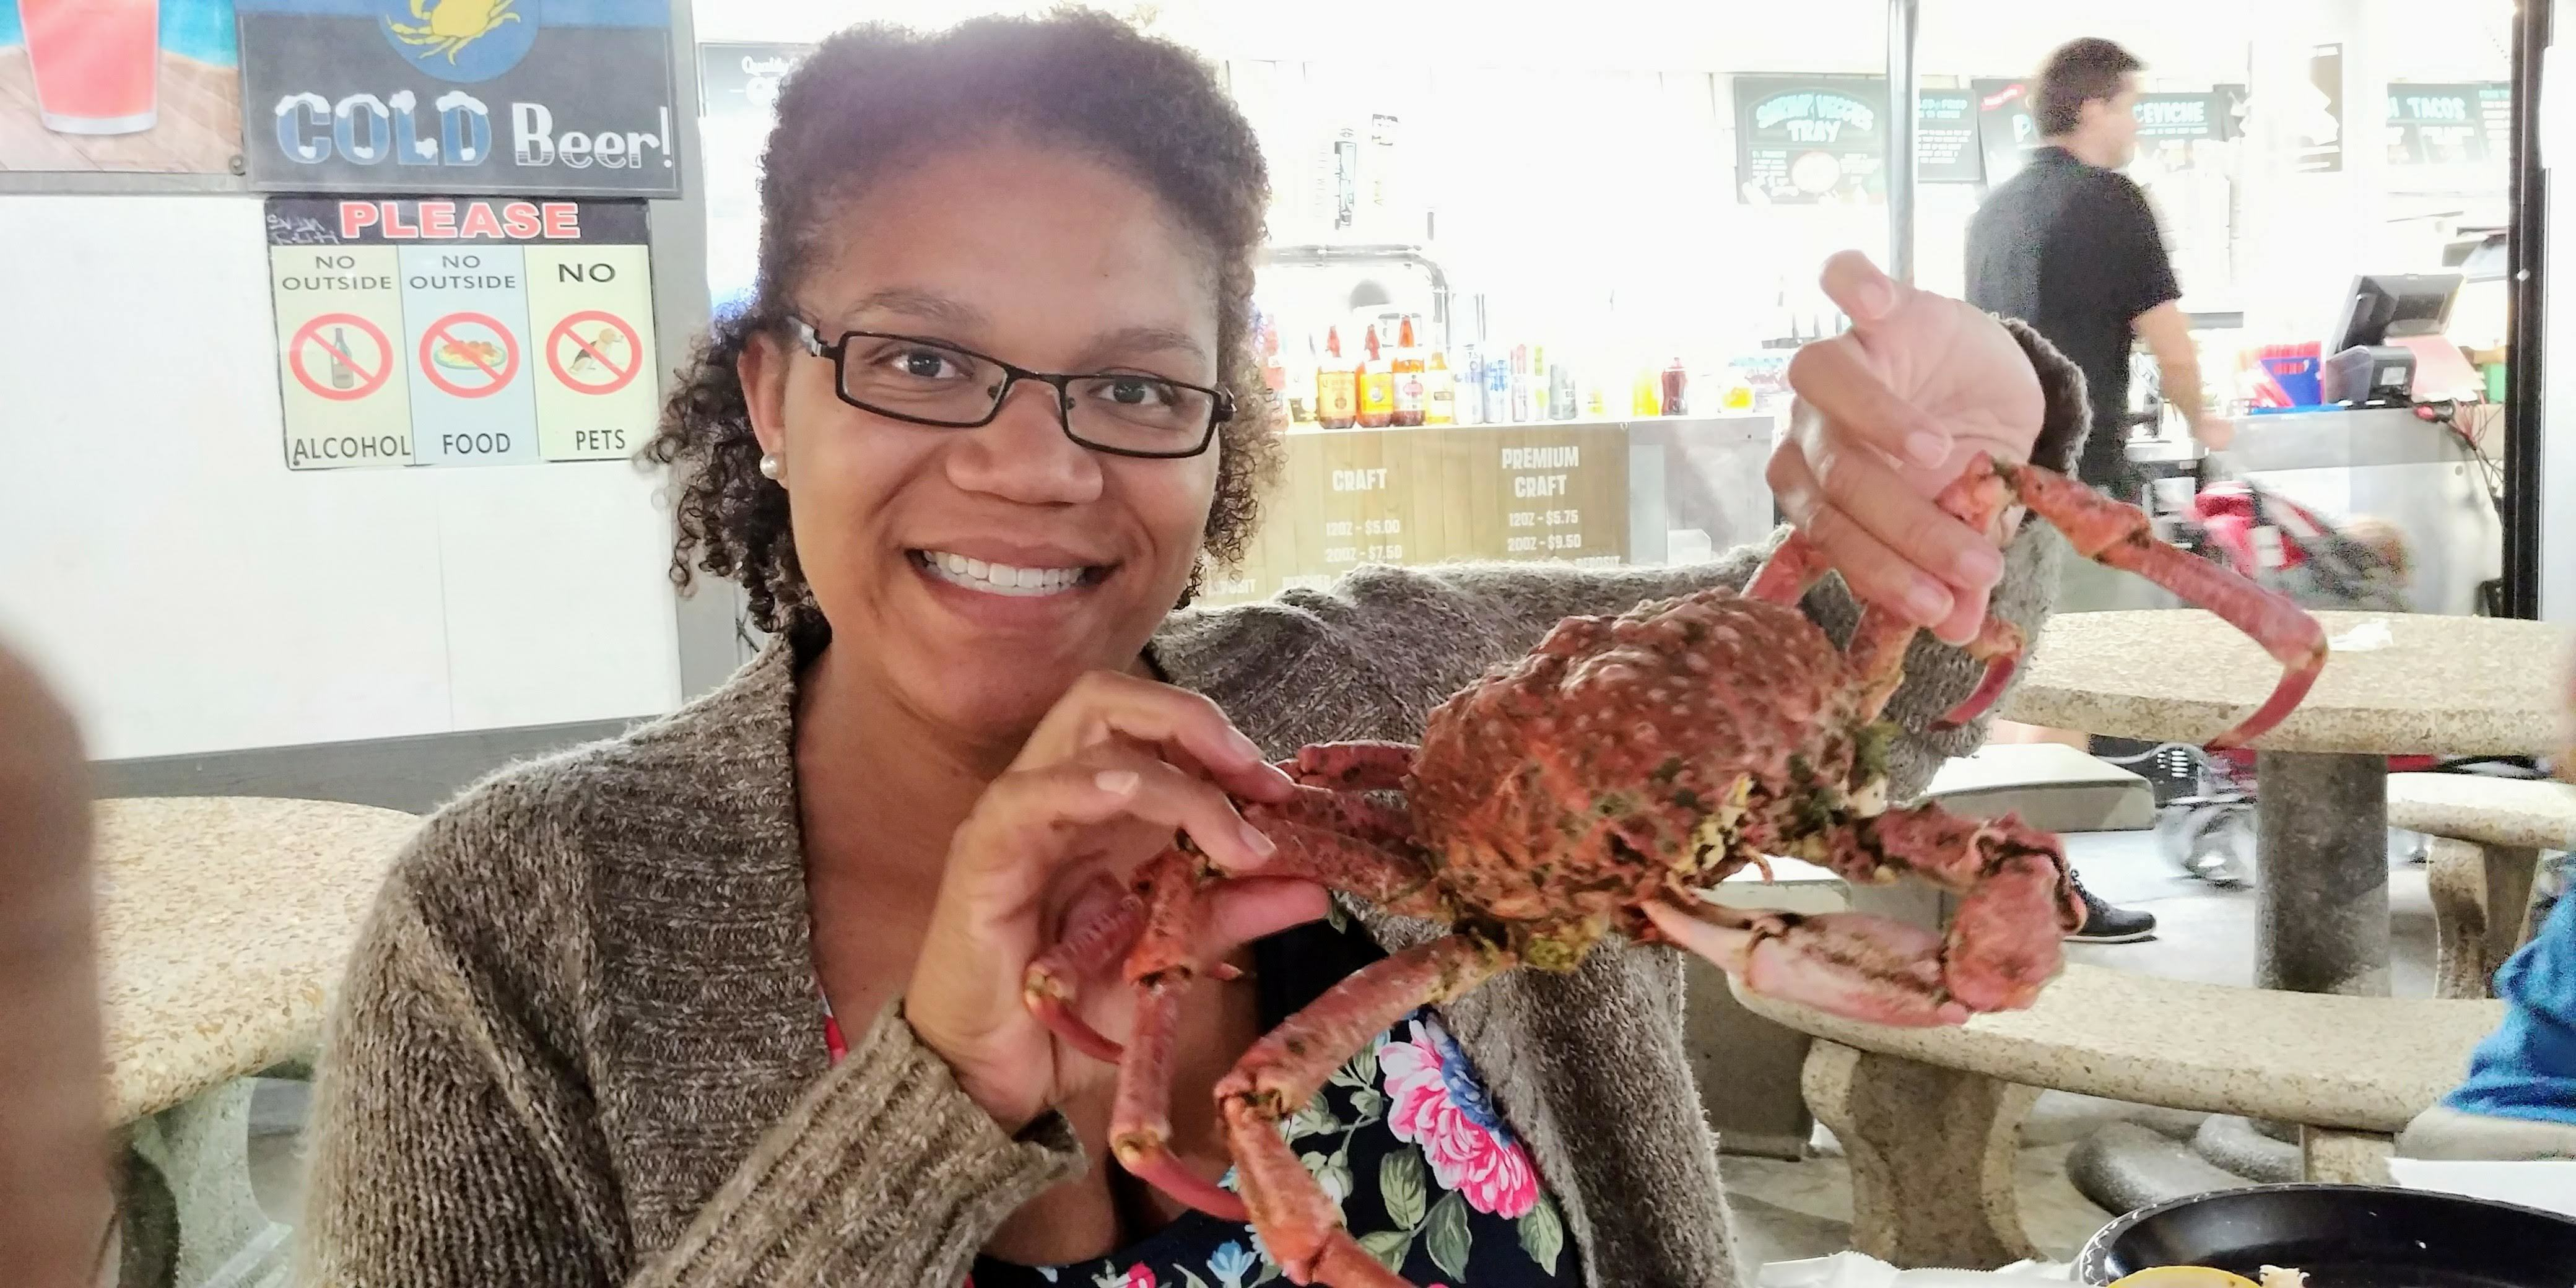 I traveled to Redondo Beach, California to visit some friends. We had to stop by the seafood market on the pier. I hand-selected this crab. It was very fresh and delicious!